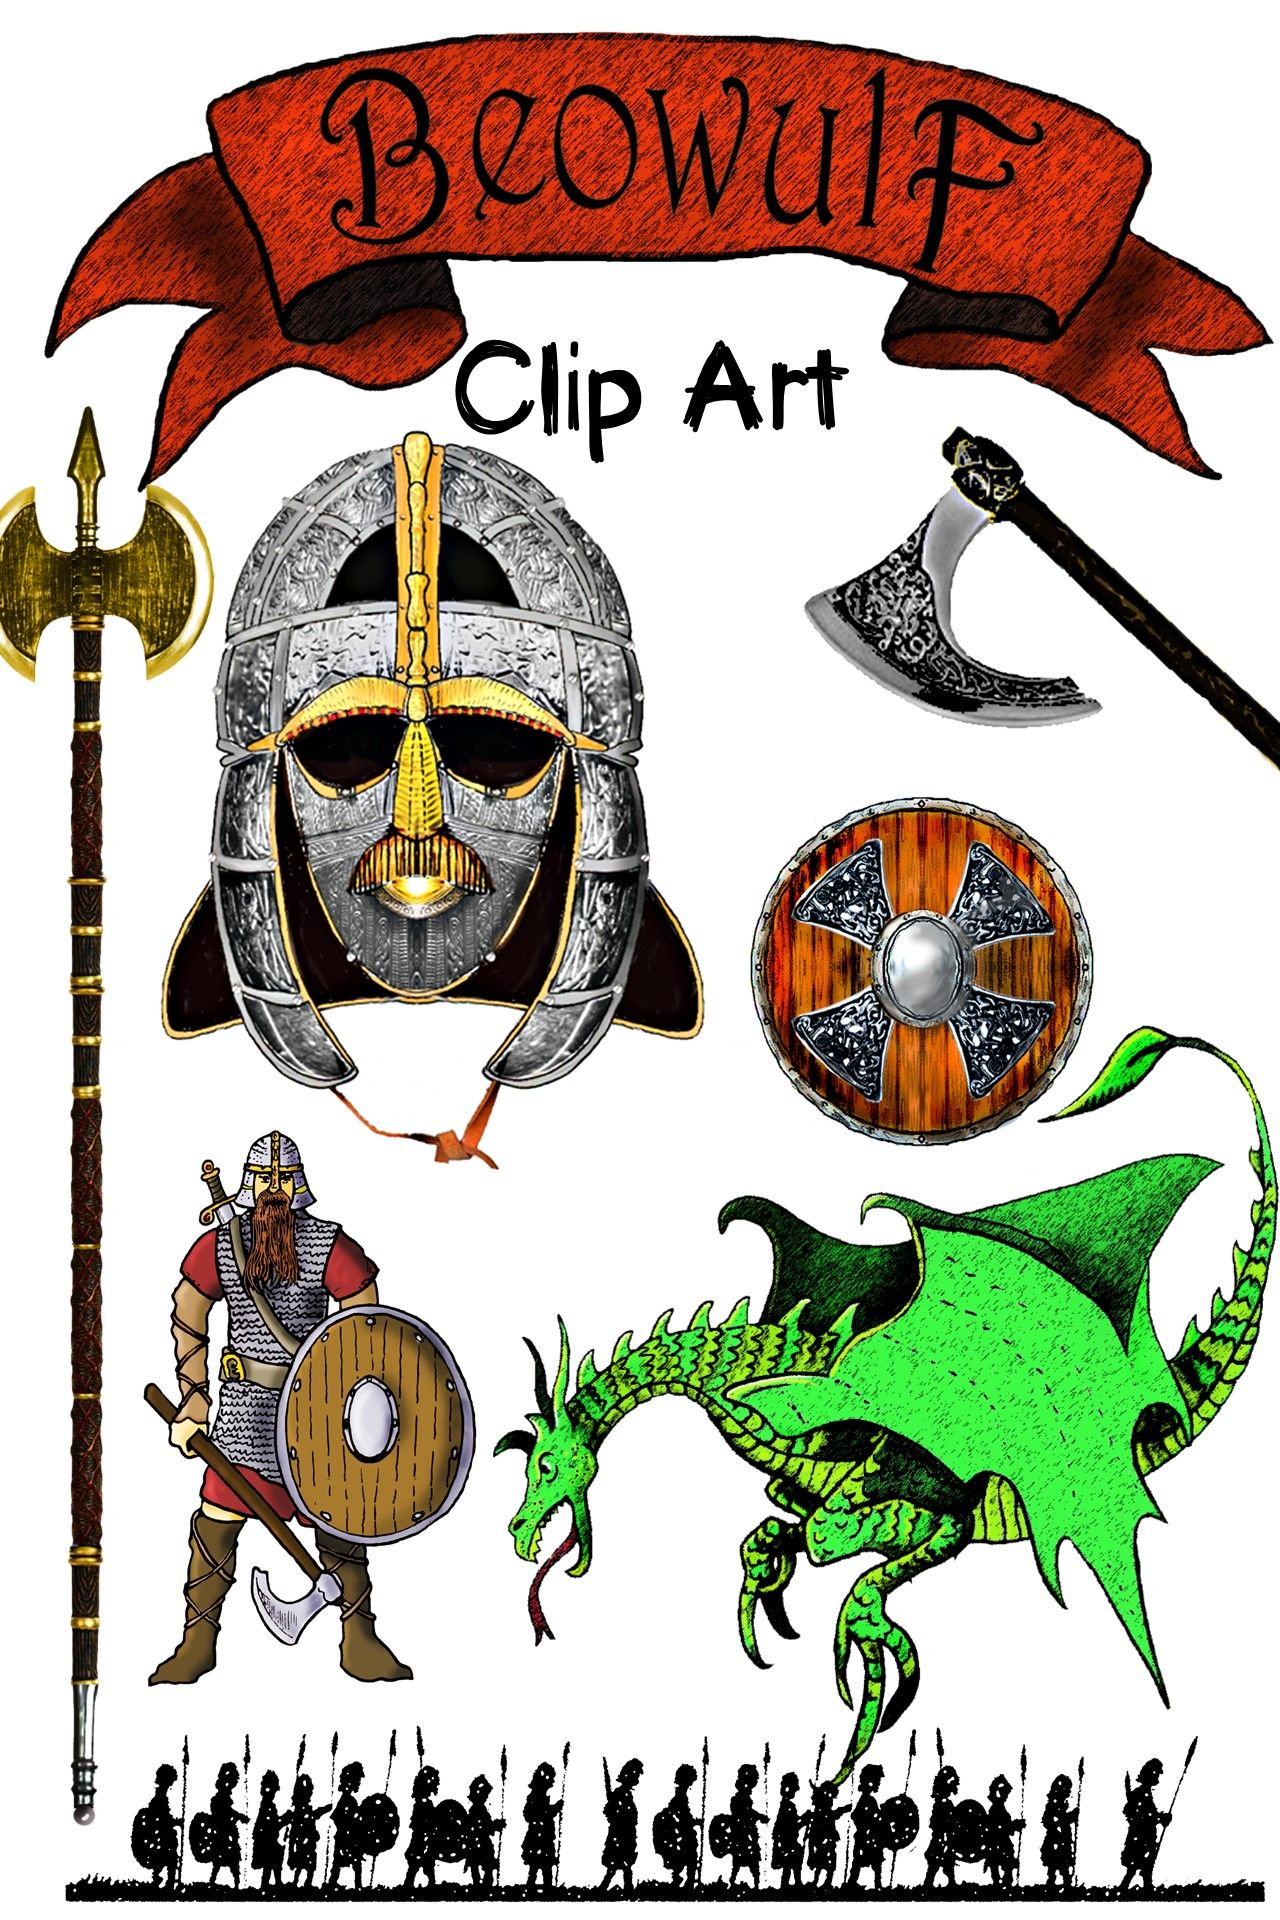 beowulf clipart senior english pinterest bulletin board clip rh pinterest com bulletin board design clipart church bulletin board clipart